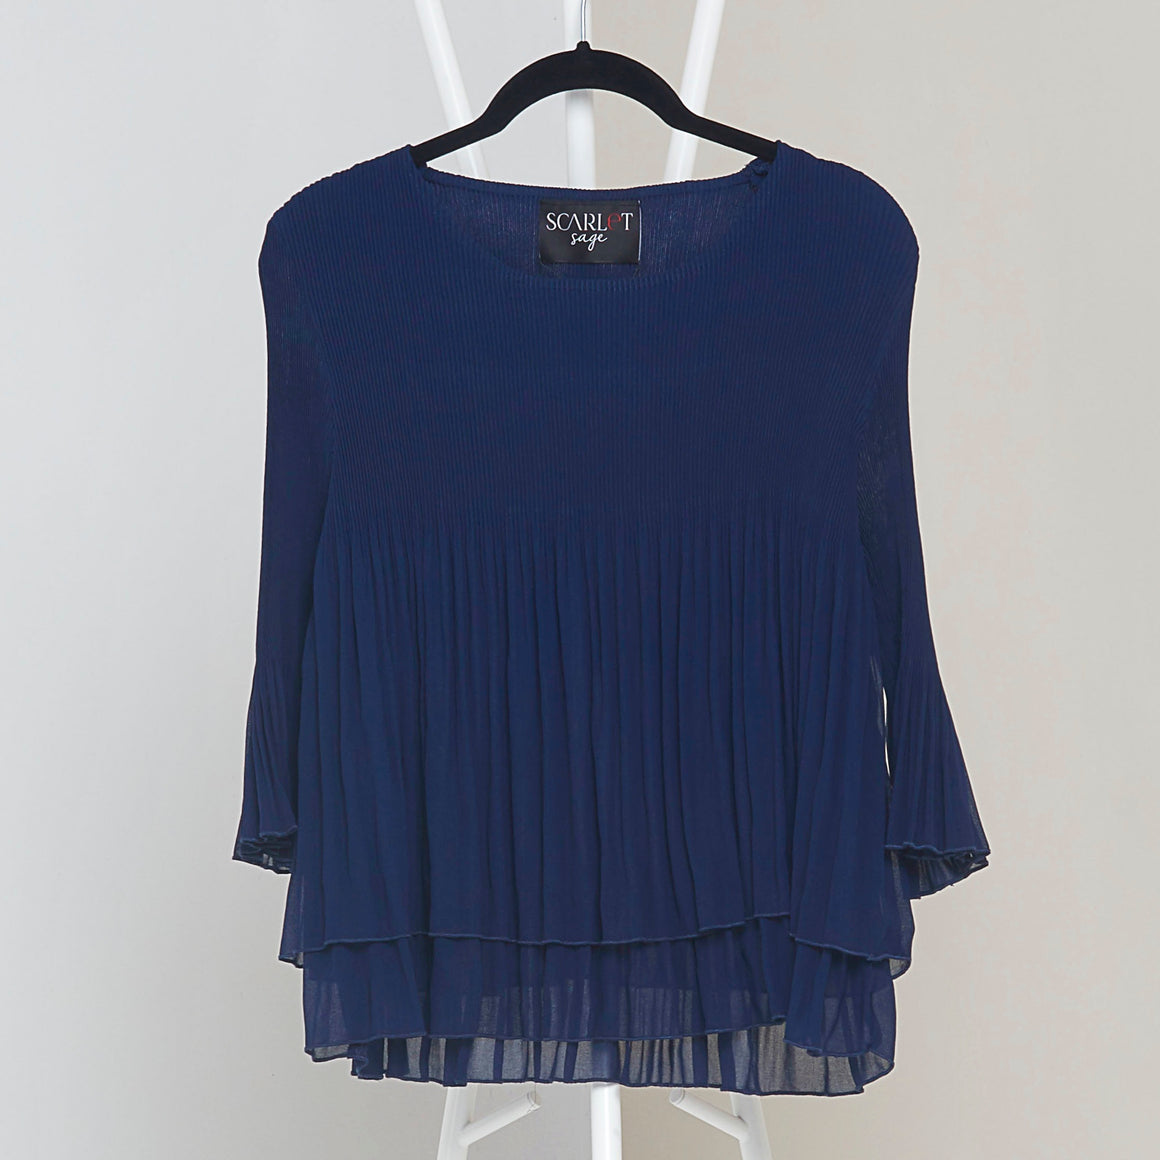 Layered Pleated Sheer Top  - Navy Blue